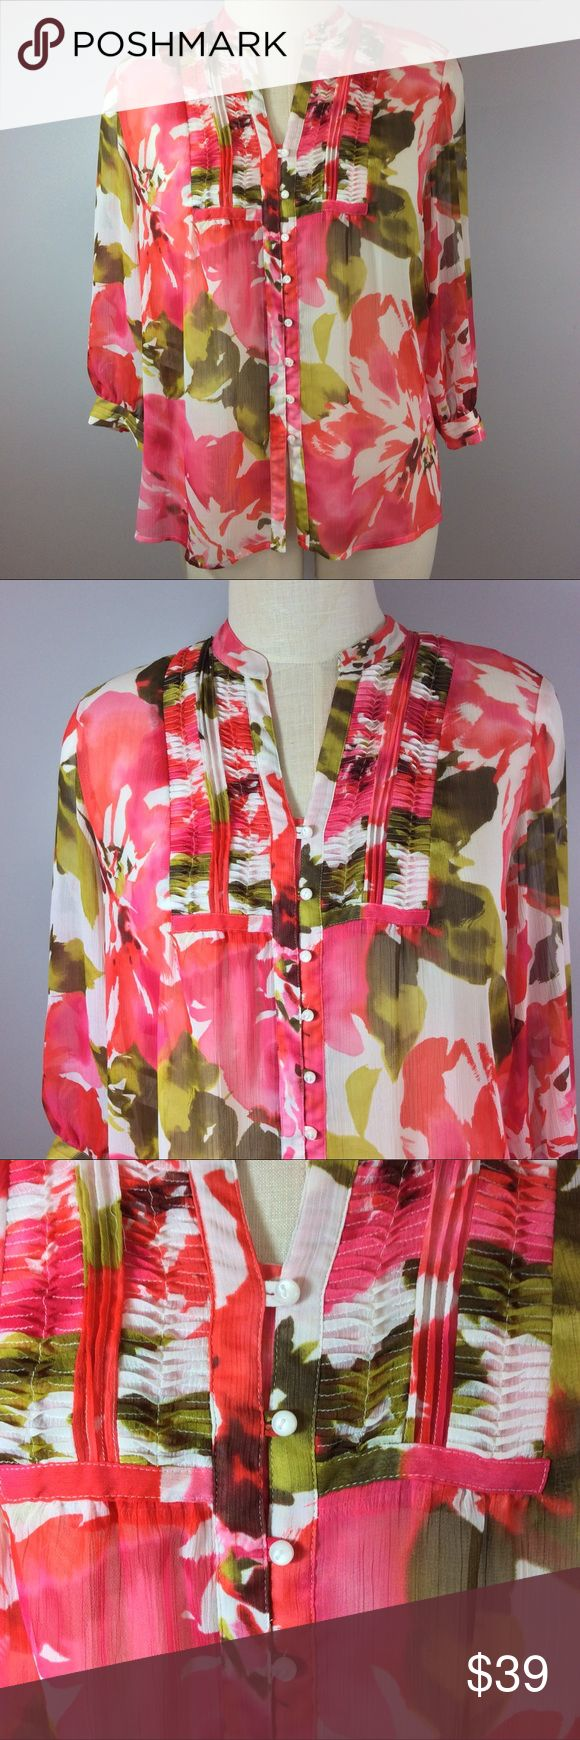 """Jones New York Signature Floral Blouse Size L/XL Jones New York Signature Floral Blouse Size L/XL.  Beautiful pink, red, green floral design.  Long and flowy.  Ruching with in insert. Blouse is sheer so I recommend a nude cami underneath.  Pretty pearlized buttons. EUC. Runs large imo. Measures 23"""" flat under arms.  28"""" long with 20"""" sleeves. My mannequin measures 40"""" across bust and this Blouse fits loosely. Jones New York Tops Blouses"""